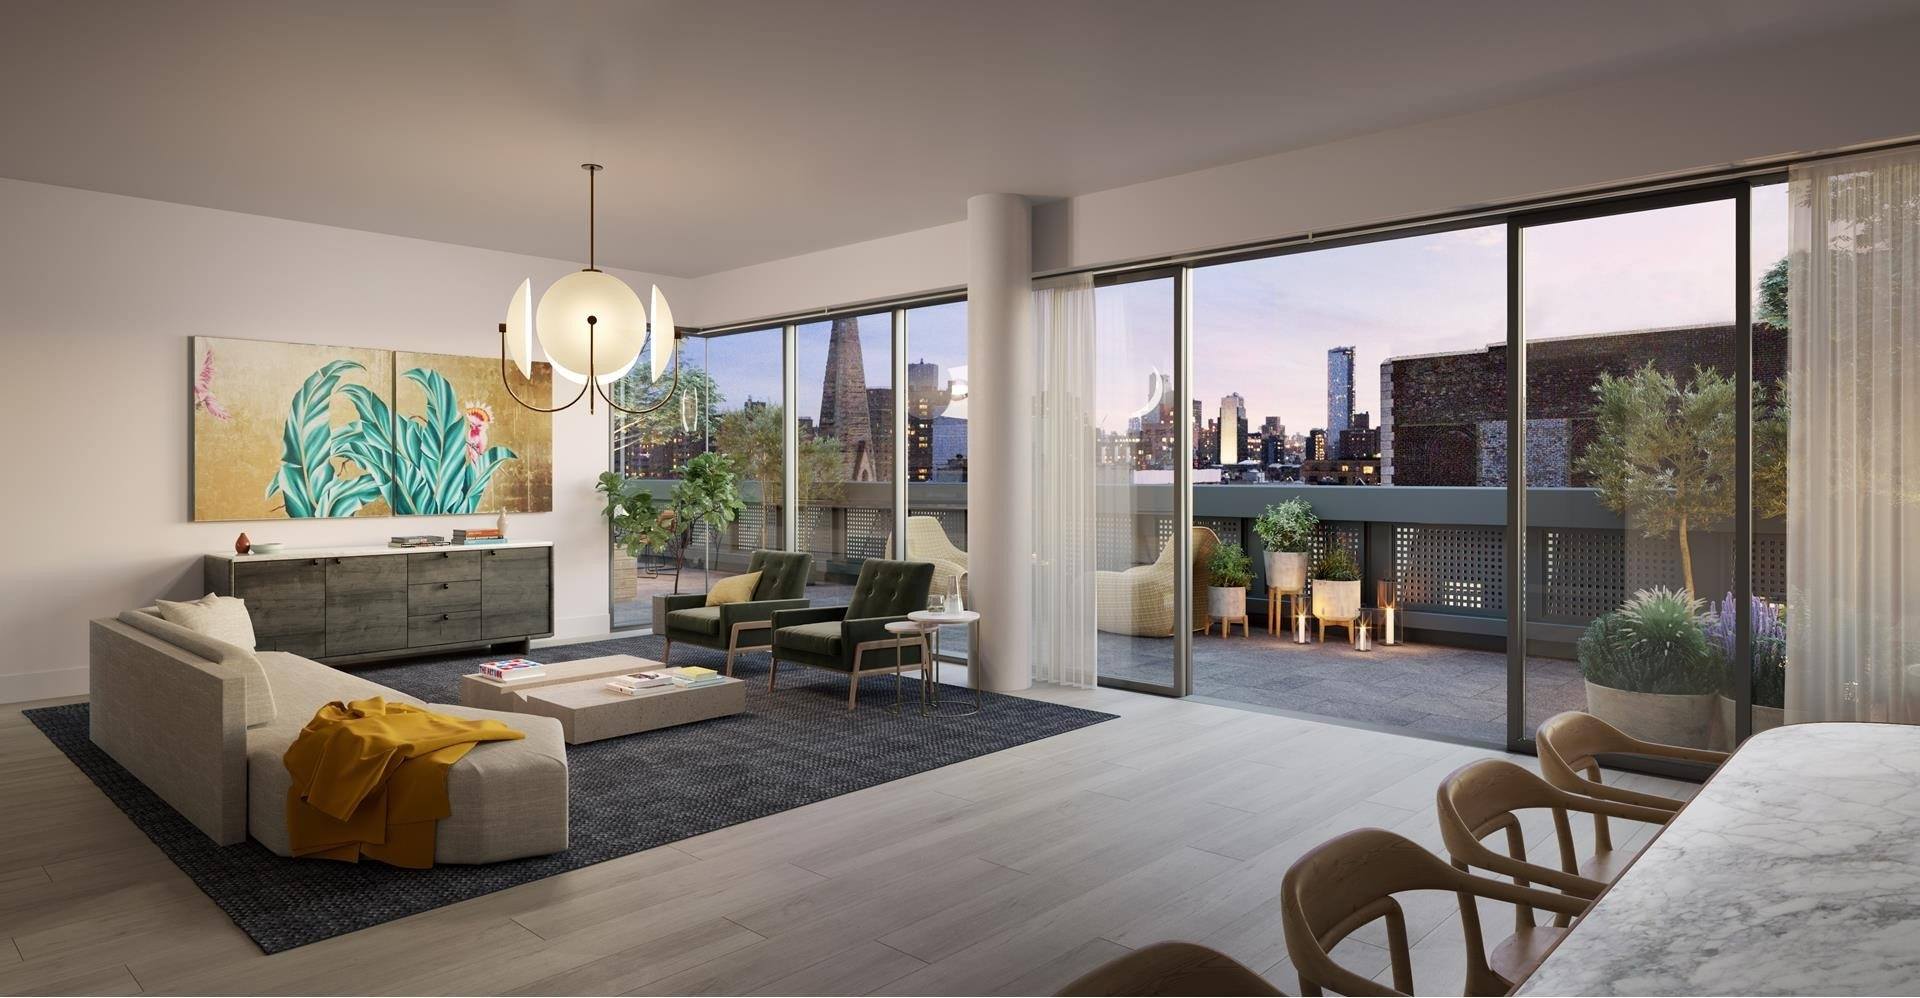 Condominium for Sale at 45 E 7TH ST , PH East Village, New York, NY 10003